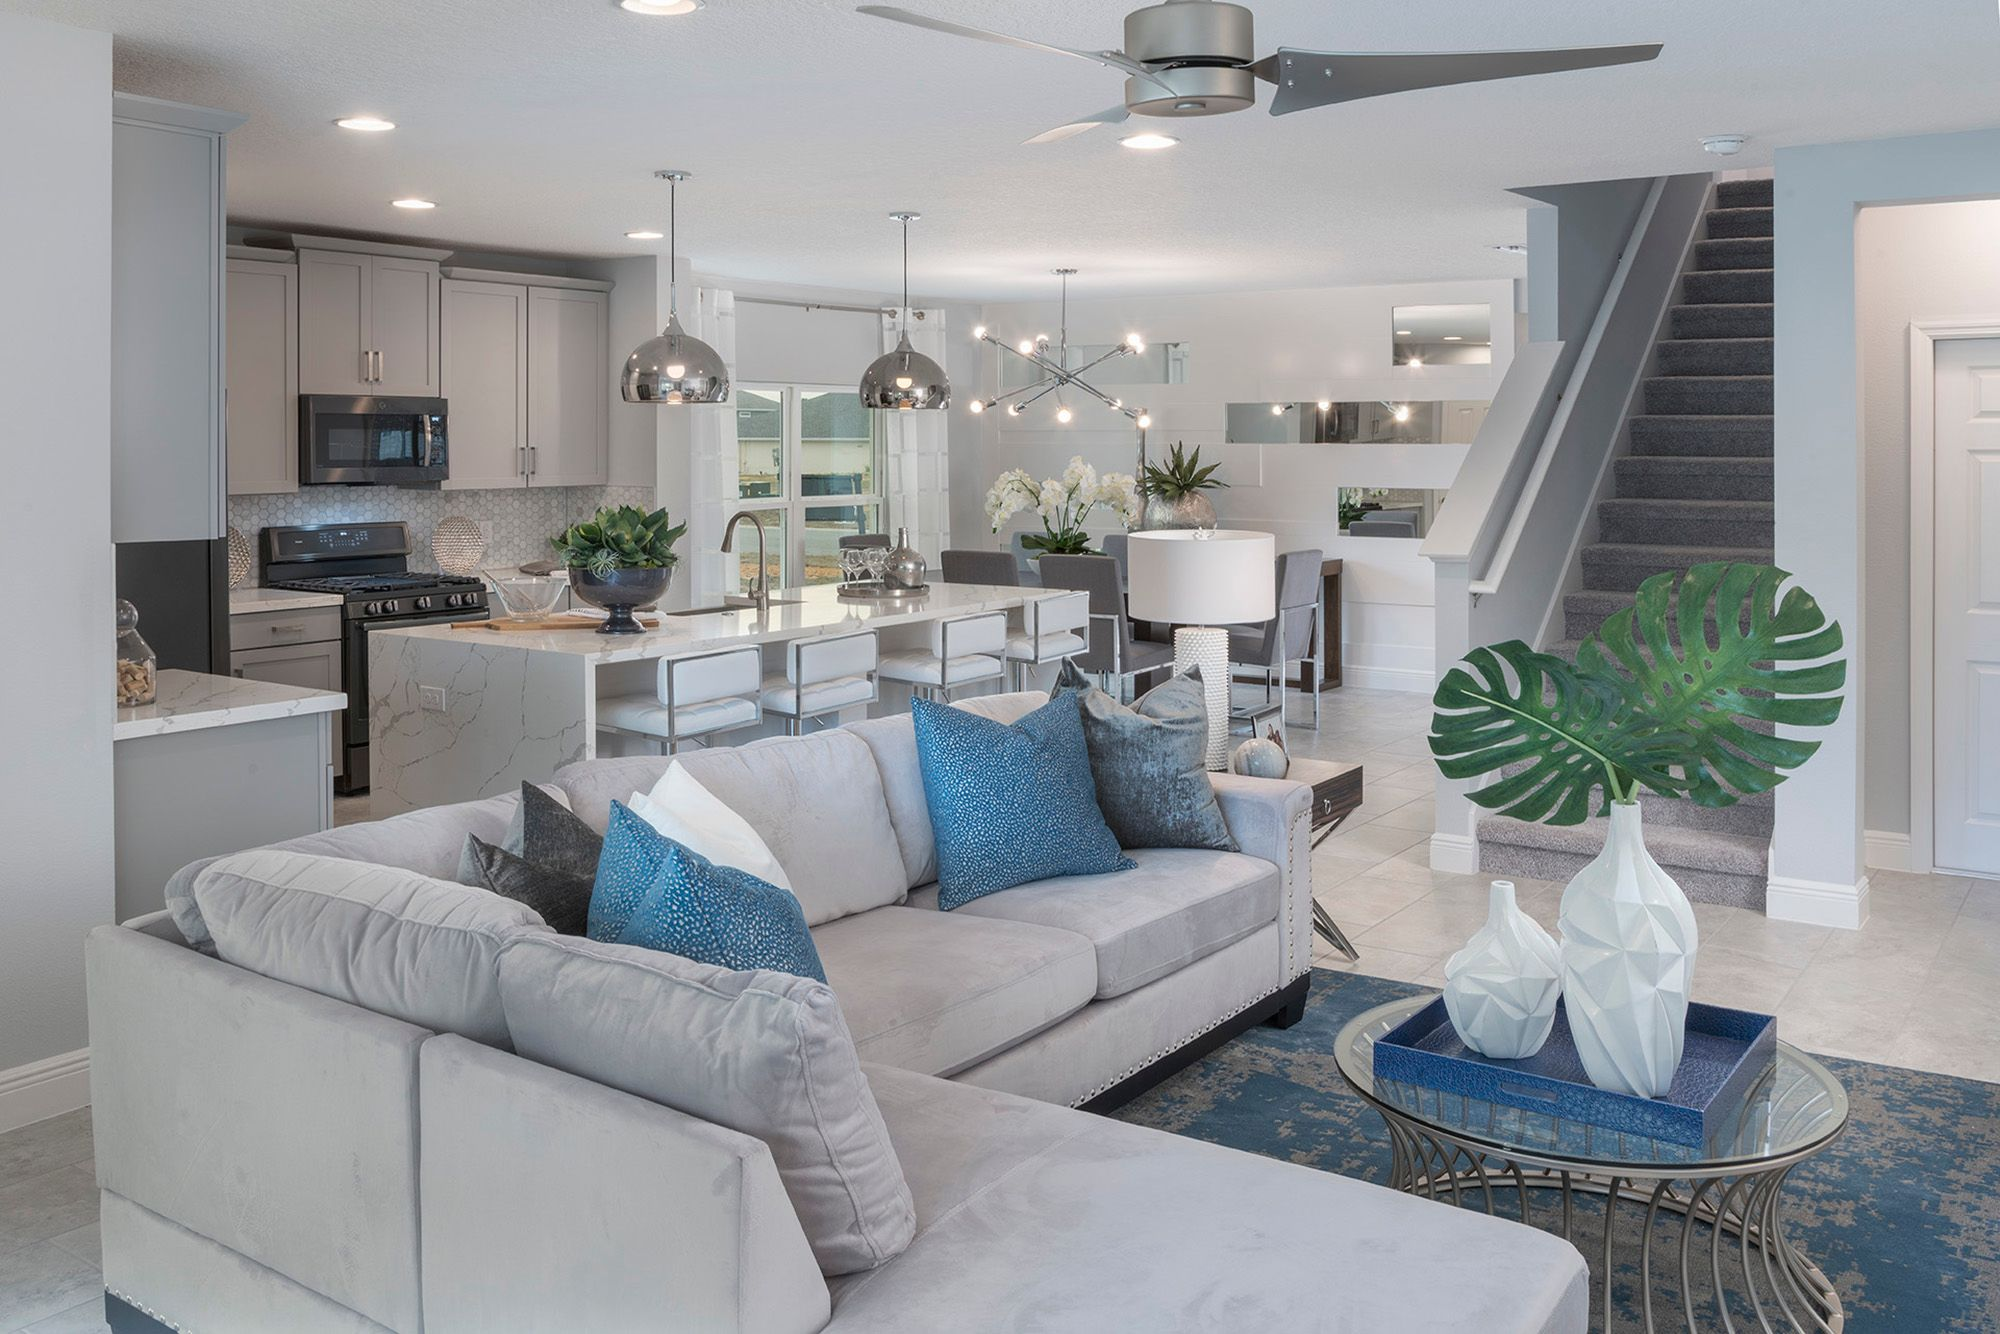 'Ardmore Reserve' by Hanover Family Builders in Orlando